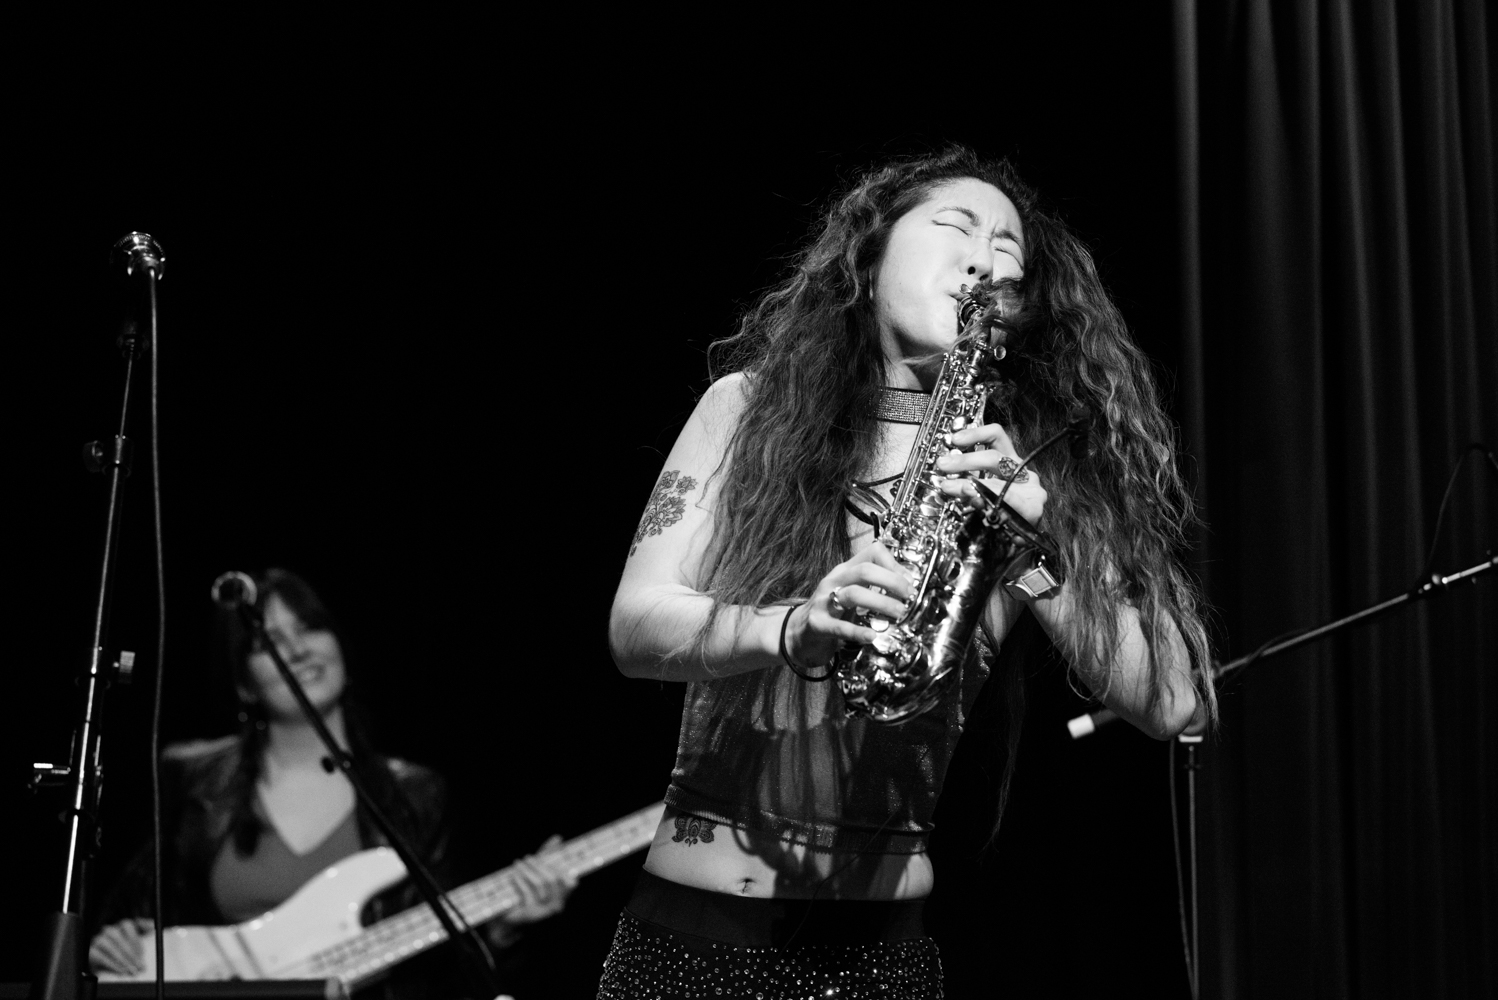 saxophone-player-grace-kelly-oakland-music-show-yoshis.jpg